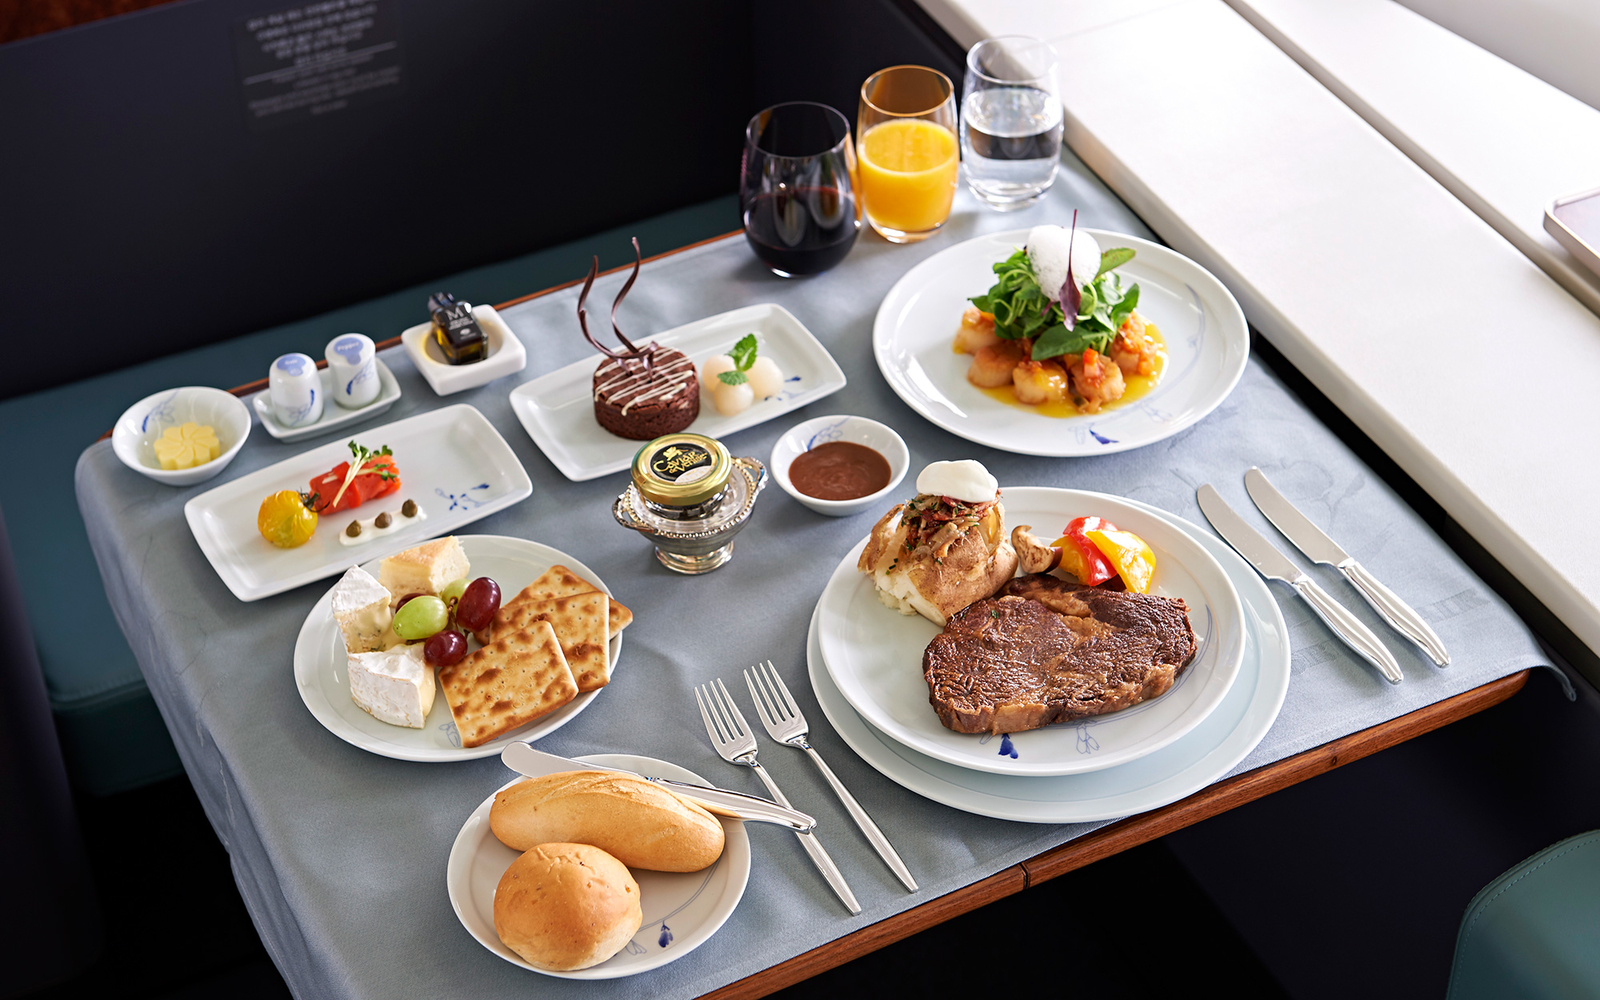 Does First Class Food Taste Good